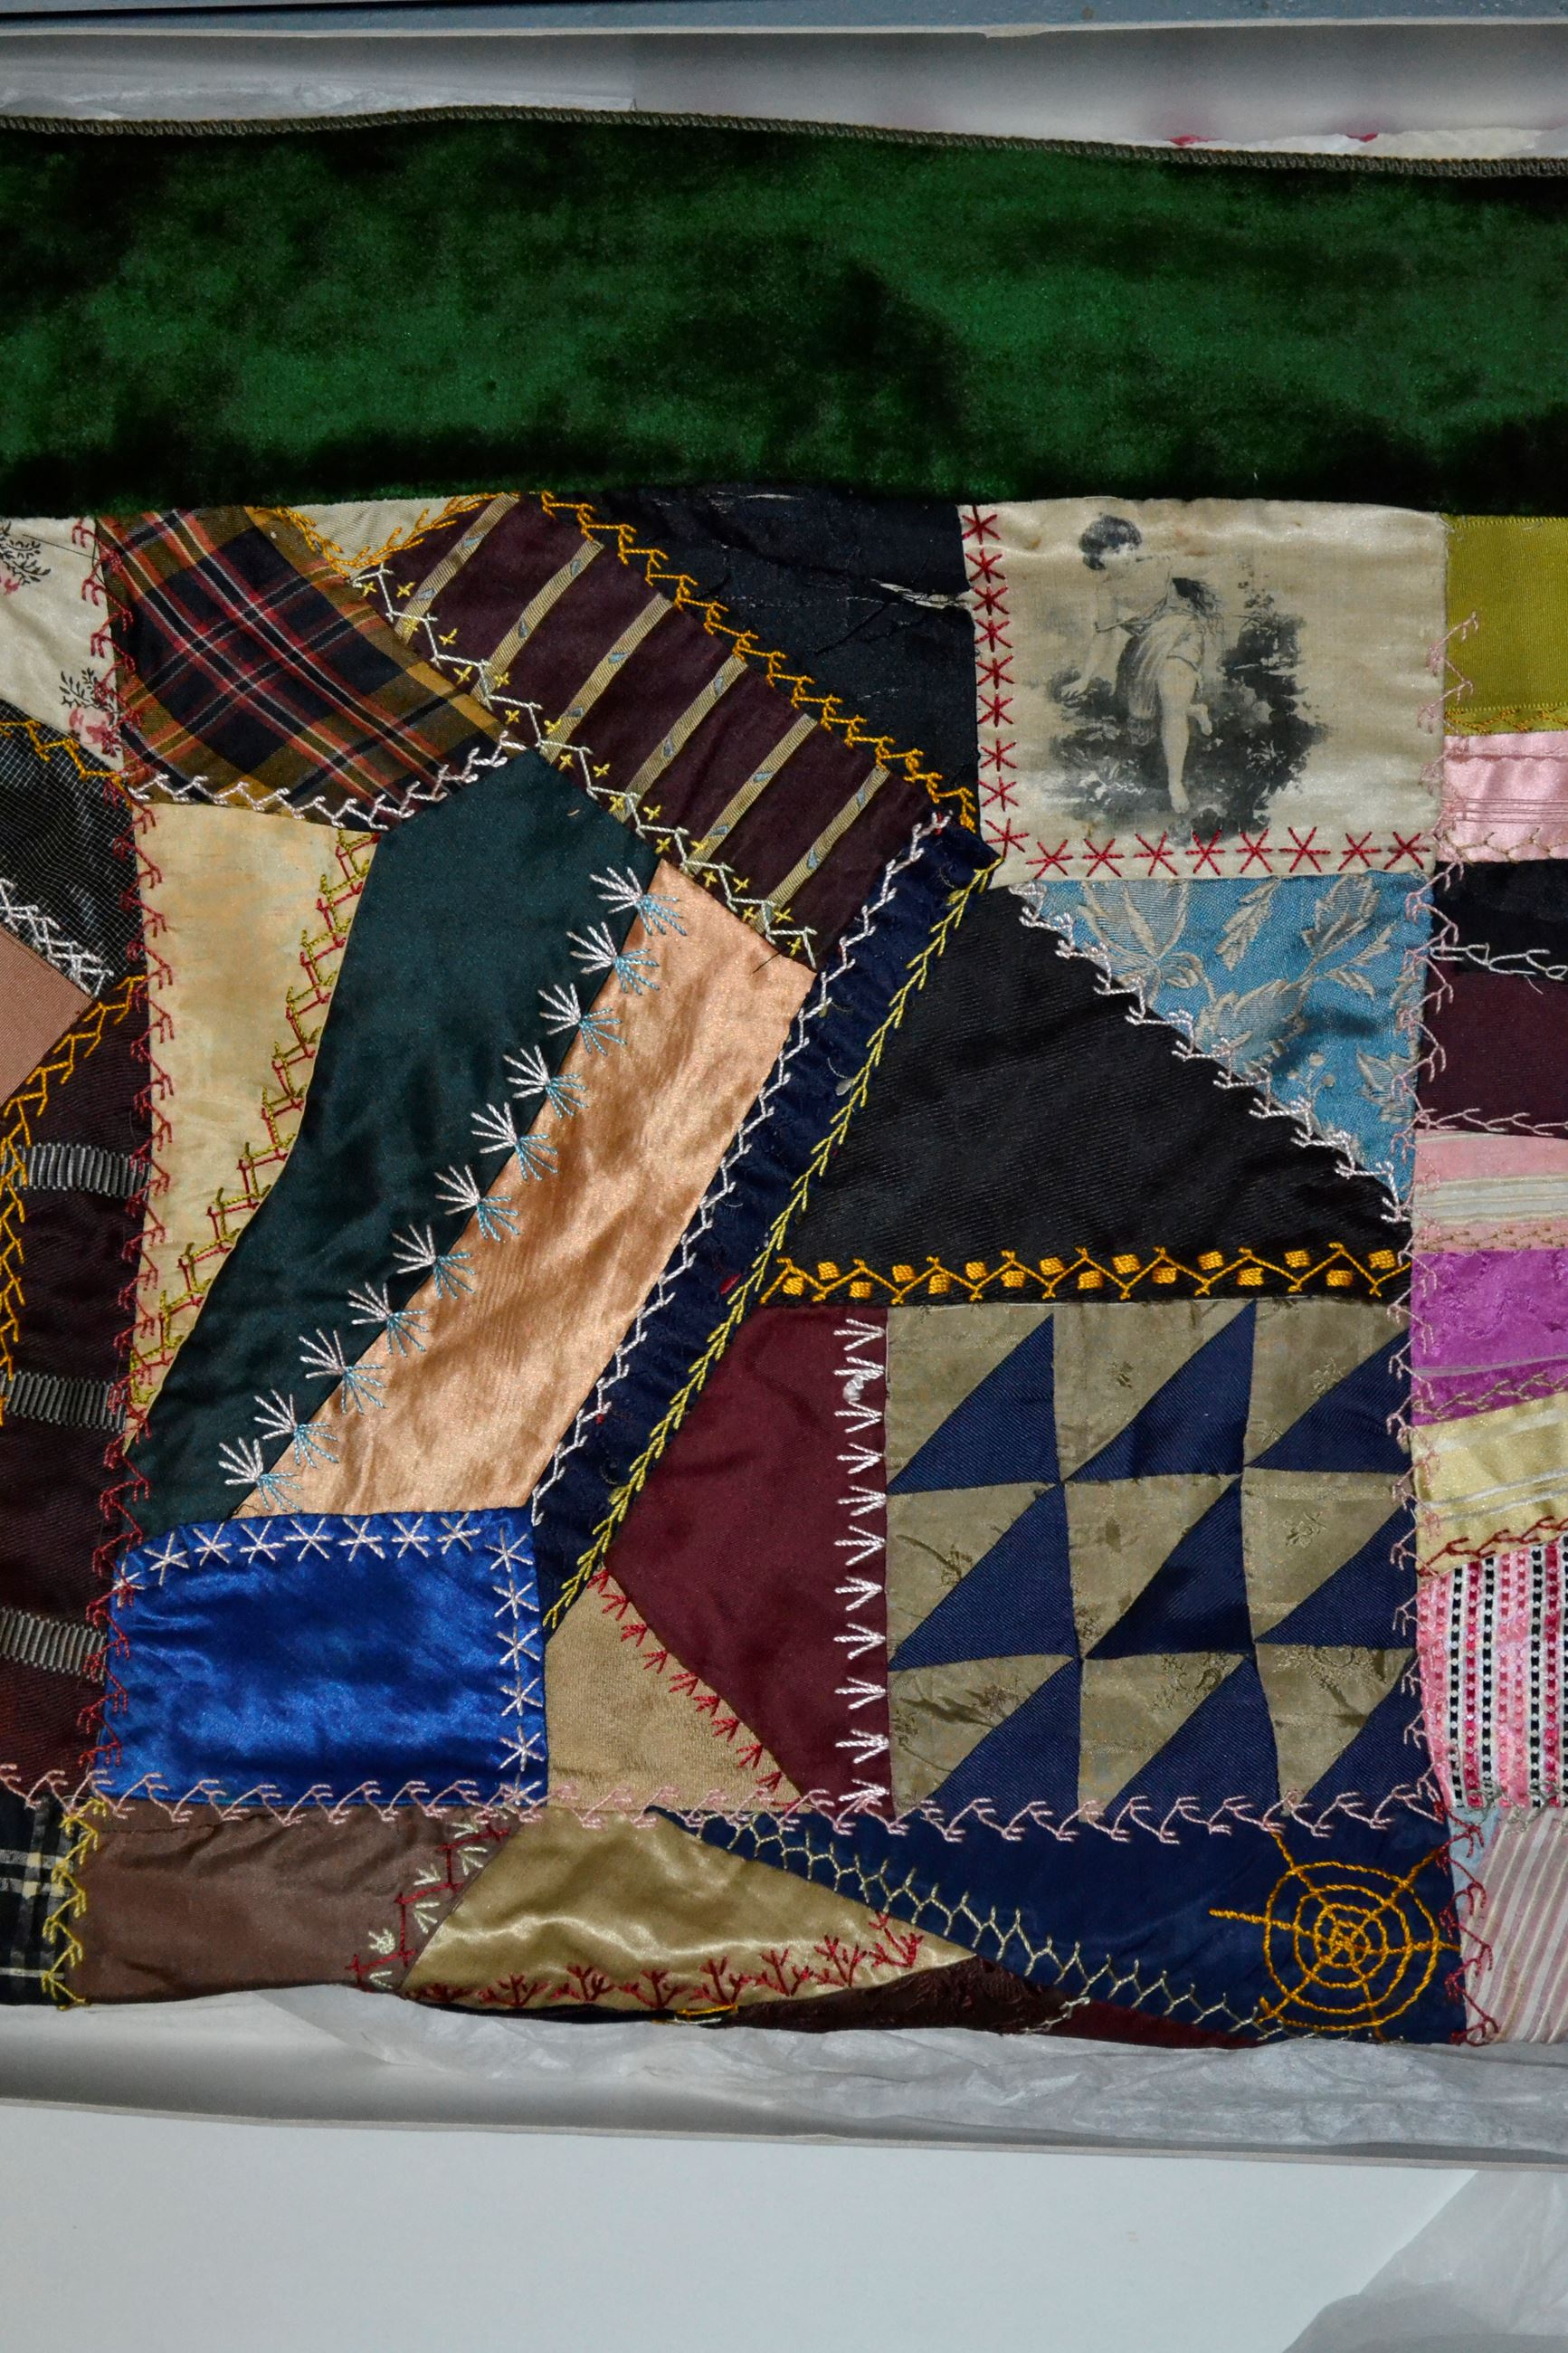 Crazy Quilt- made by Ruth Lamphrey Cadle- c1880 Gift of Mrs Mauree P Mahin and family